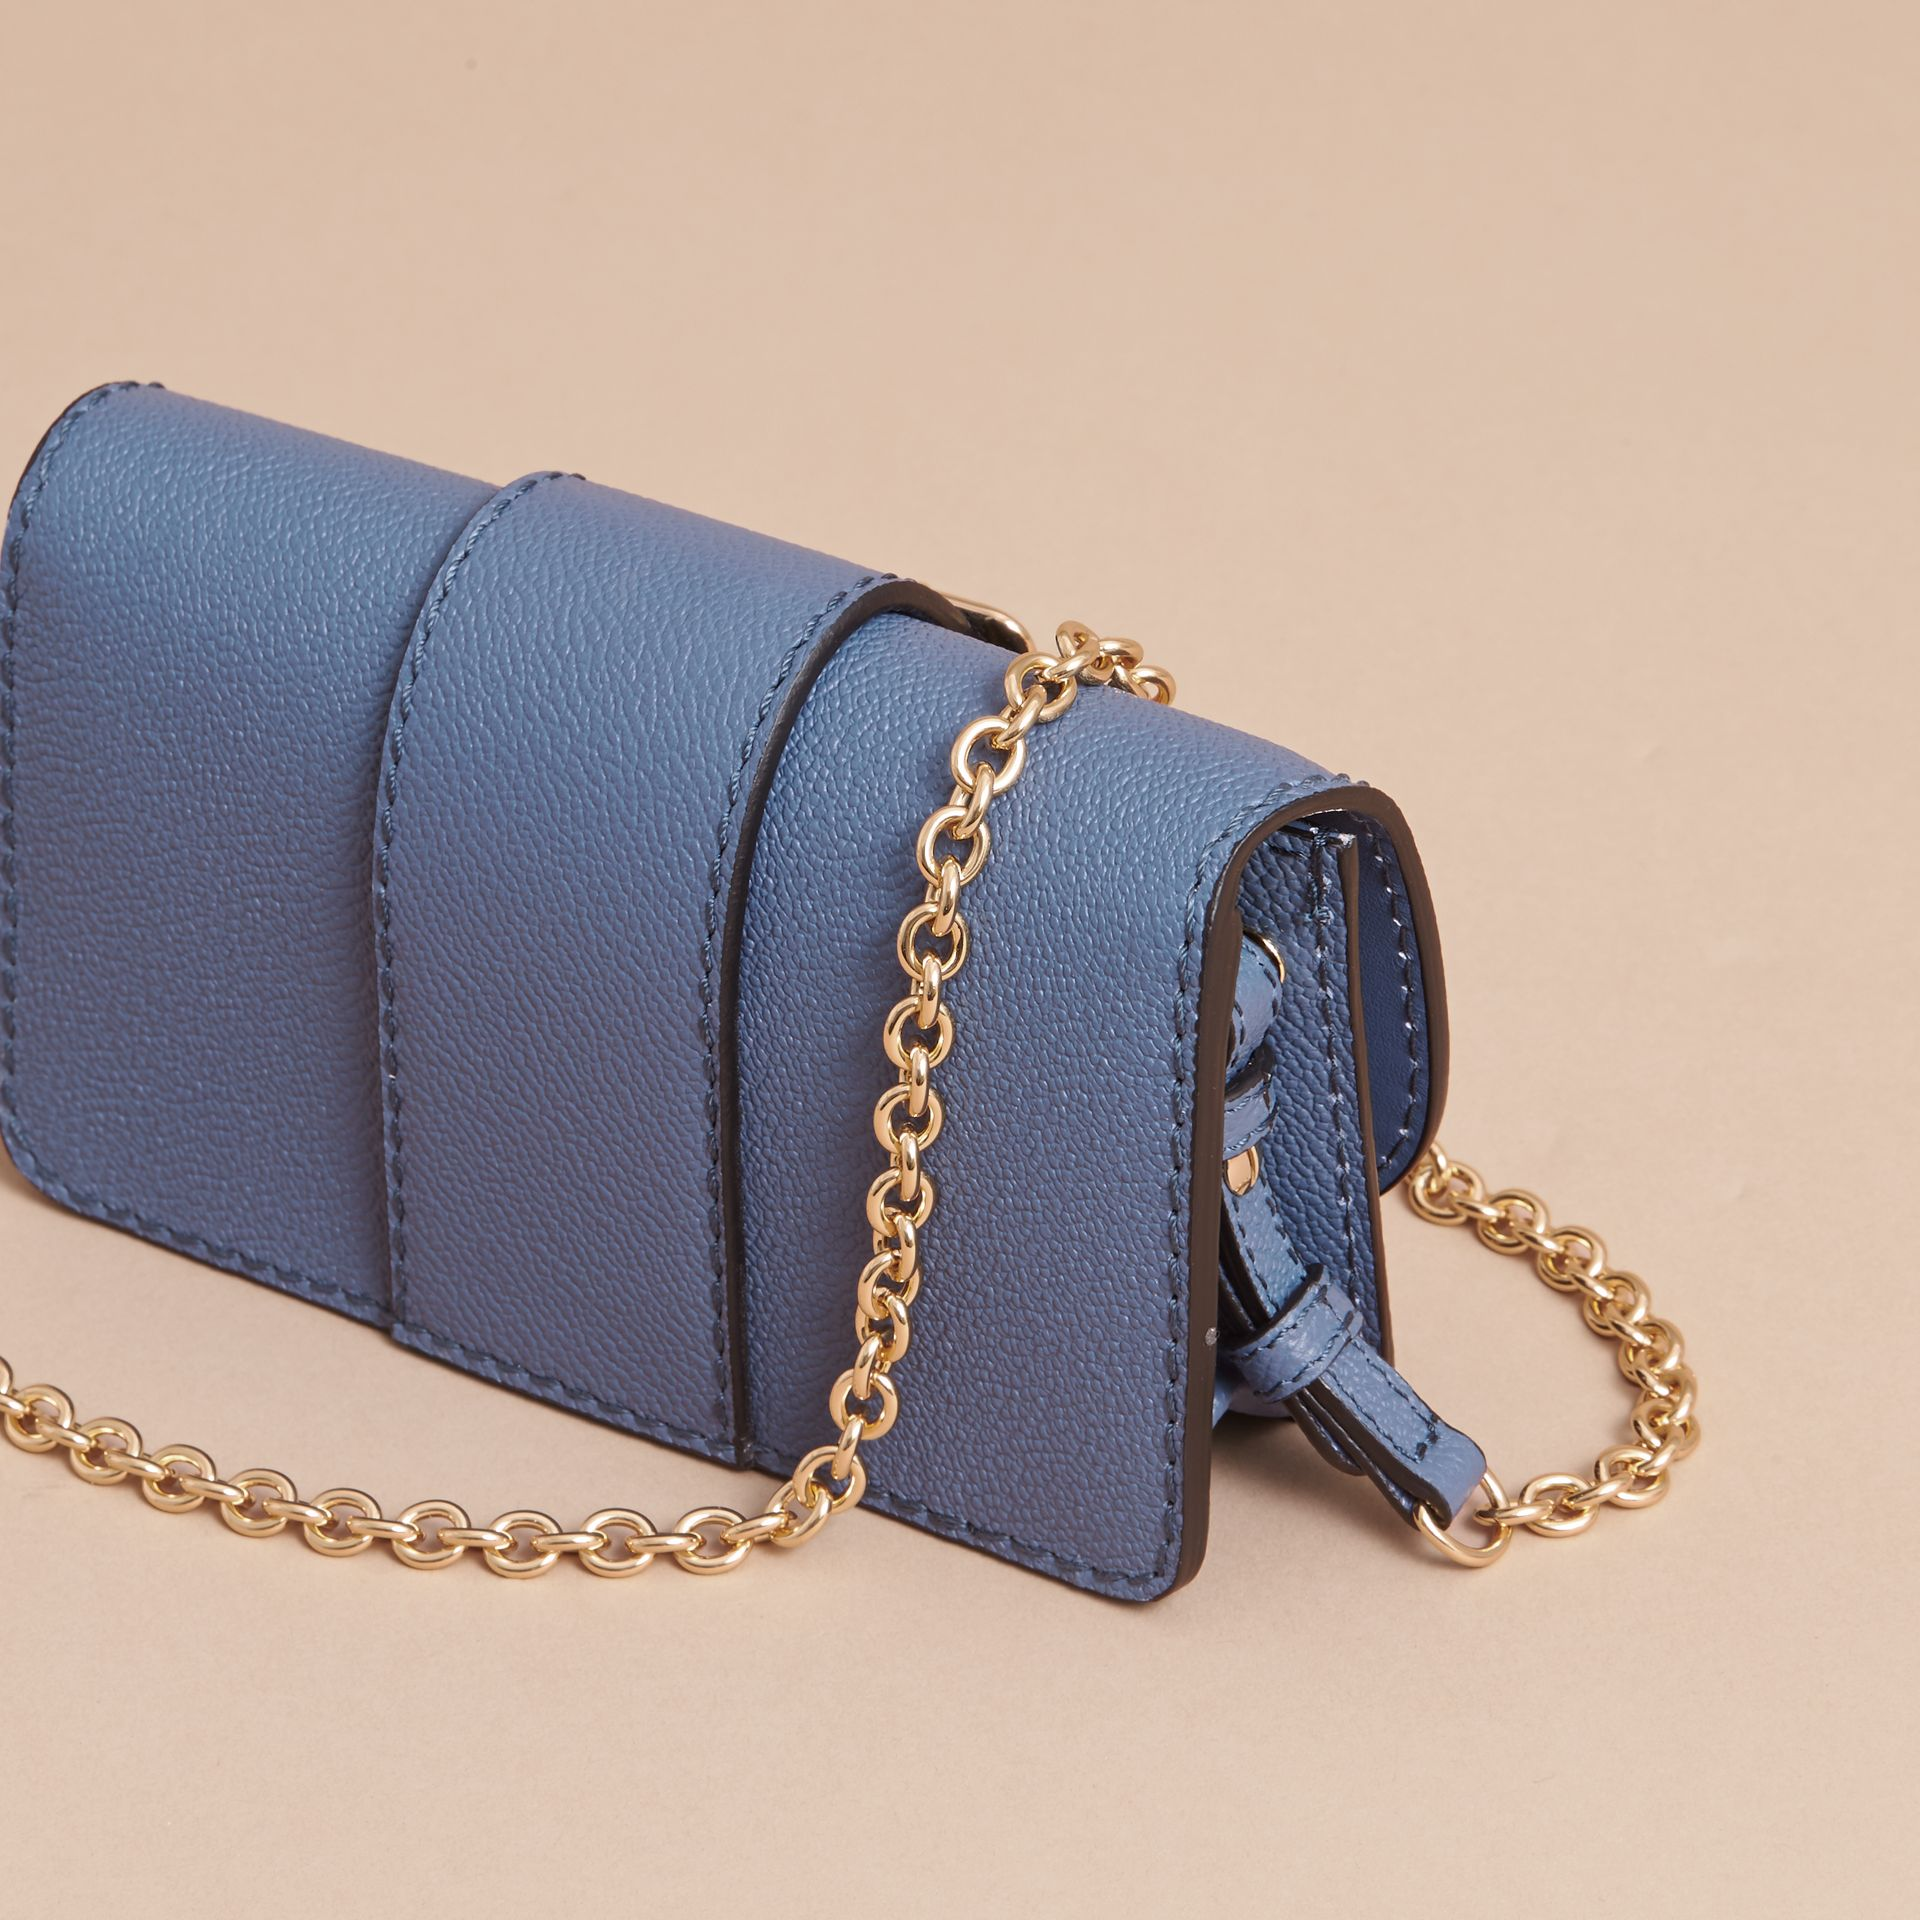 The Mini Buckle Bag in Grainy Leather in Steel Blue - Women | Burberry - gallery image 3